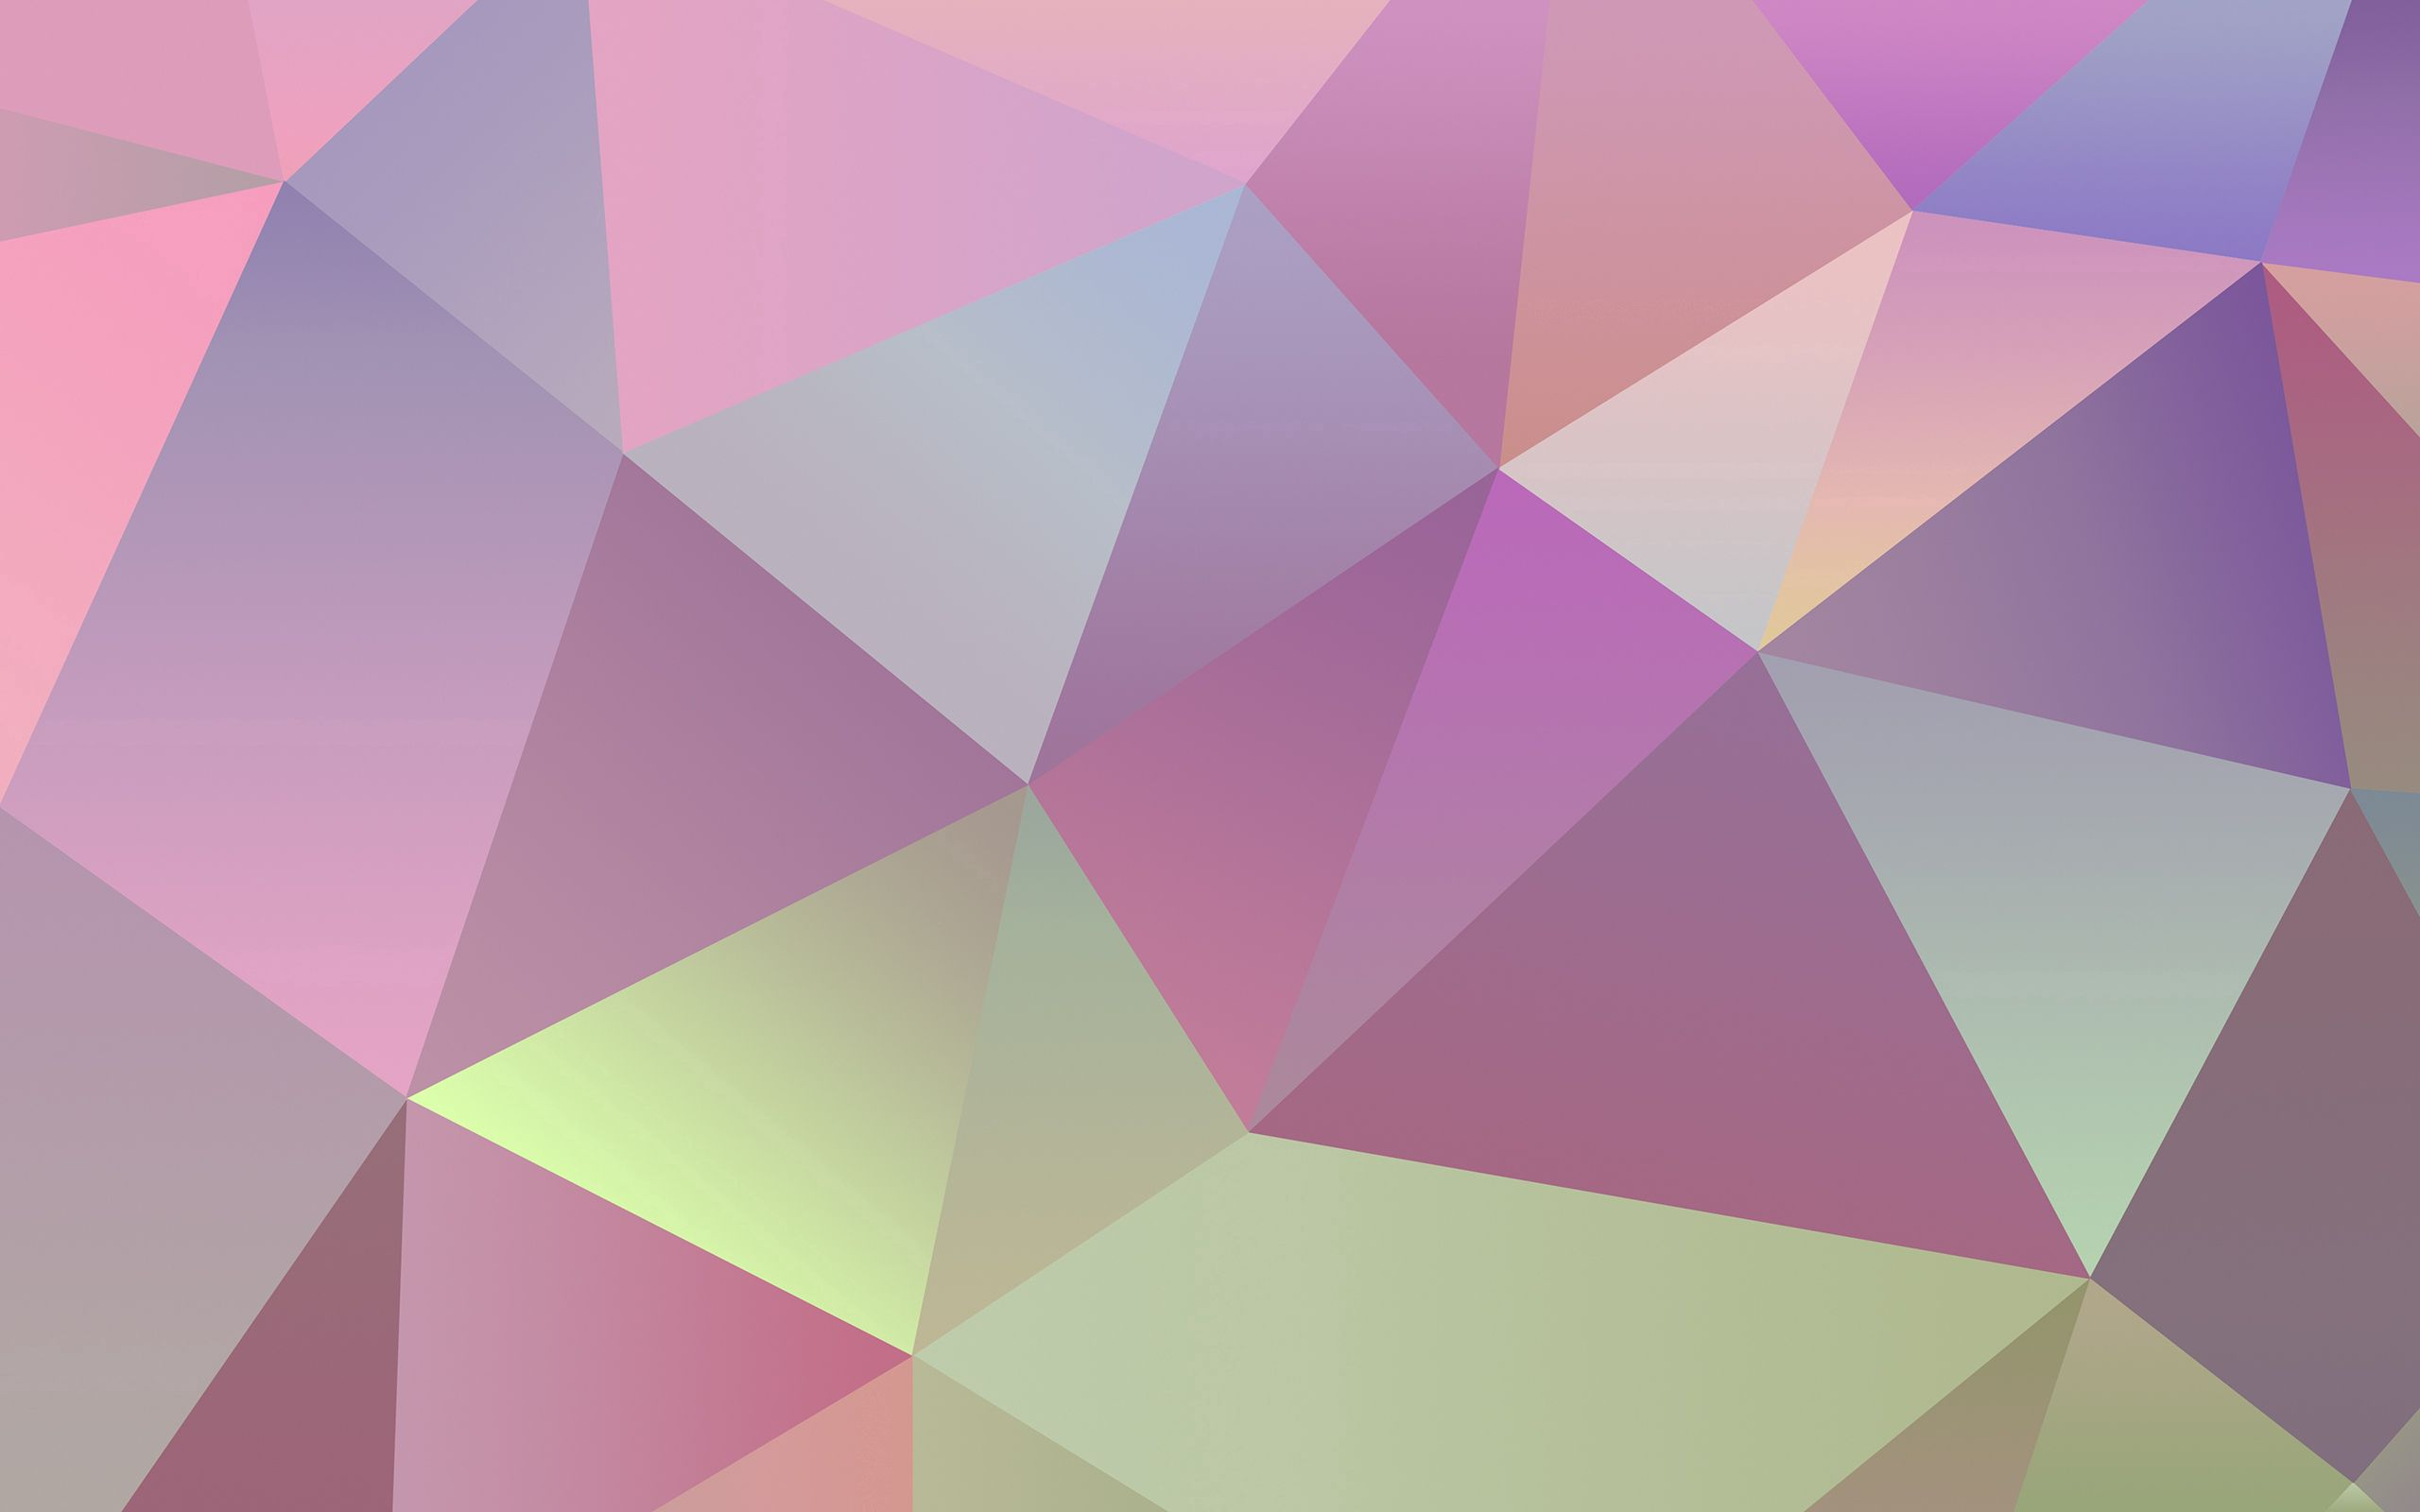 129700 download wallpaper Abstract, Background, Irregularities, Shine, Light screensavers and pictures for free